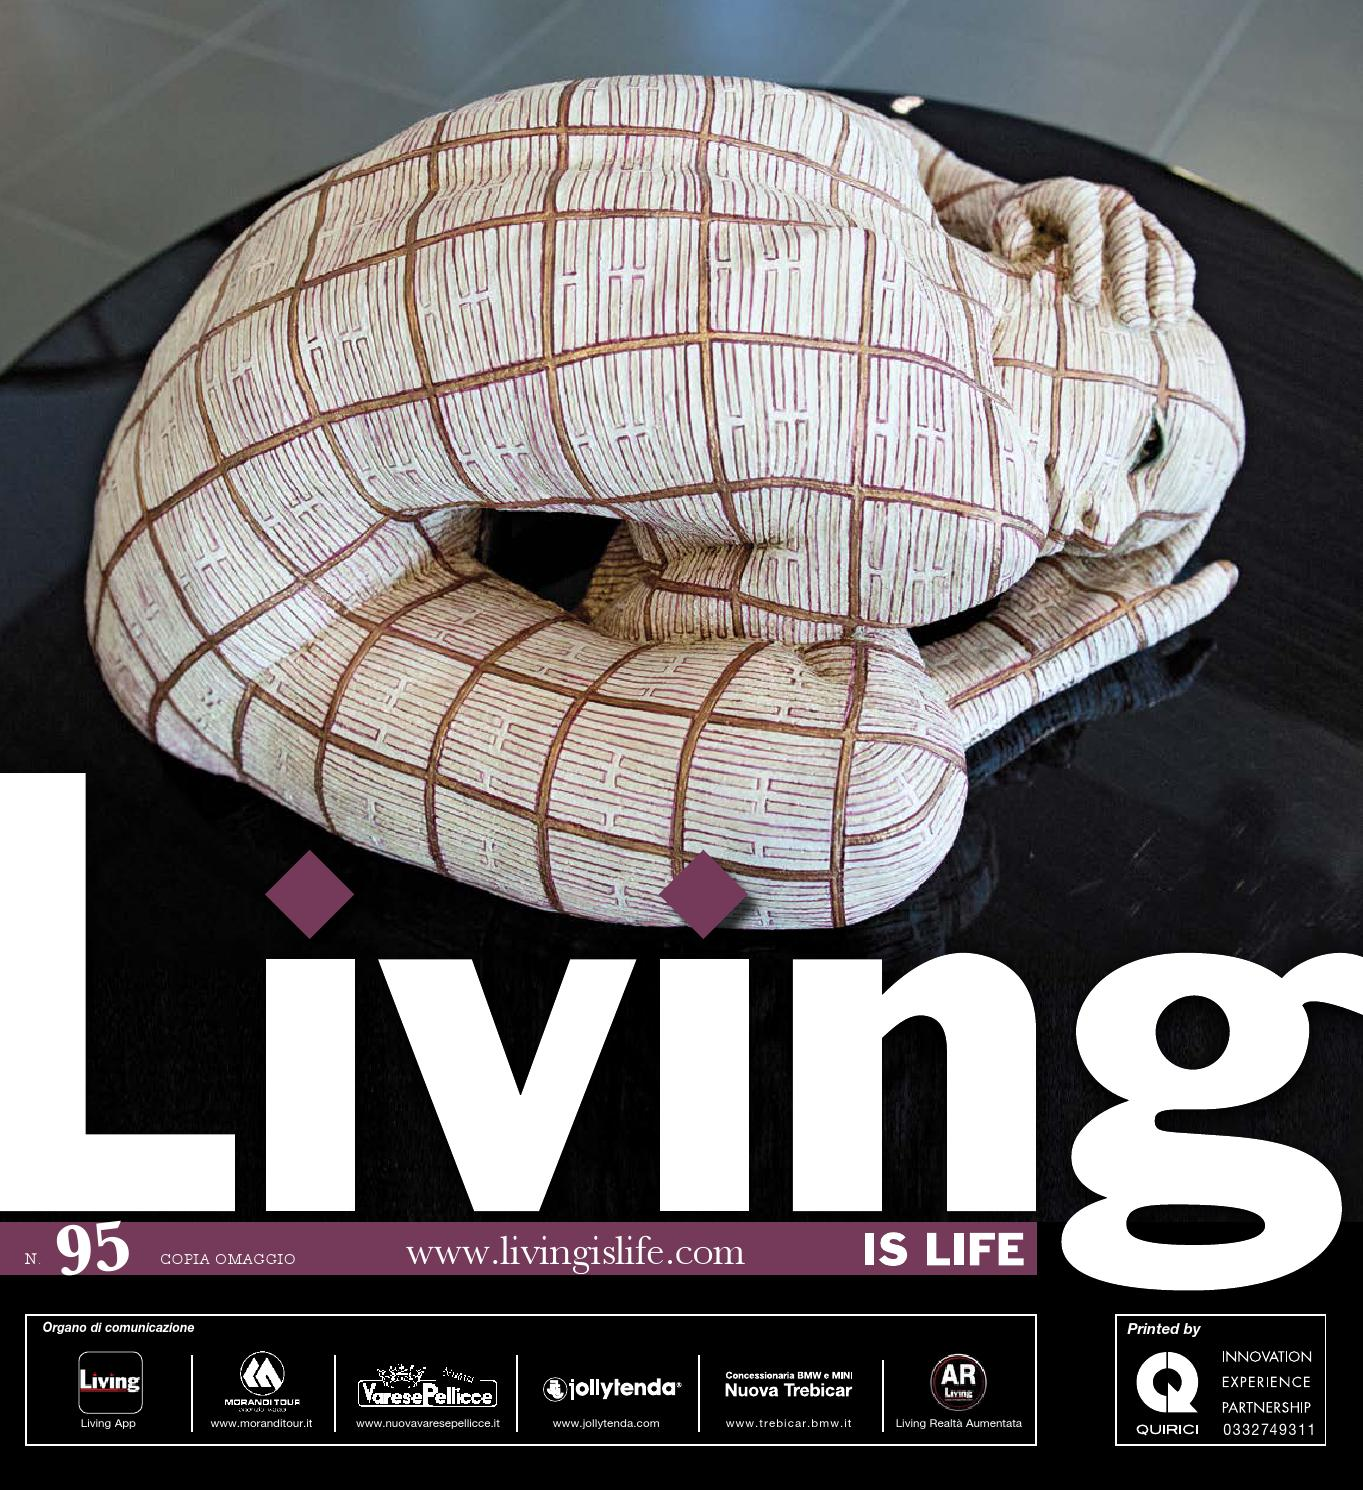 7a71ab0d9b Living Is Life 95 by Living Is Life - issuu